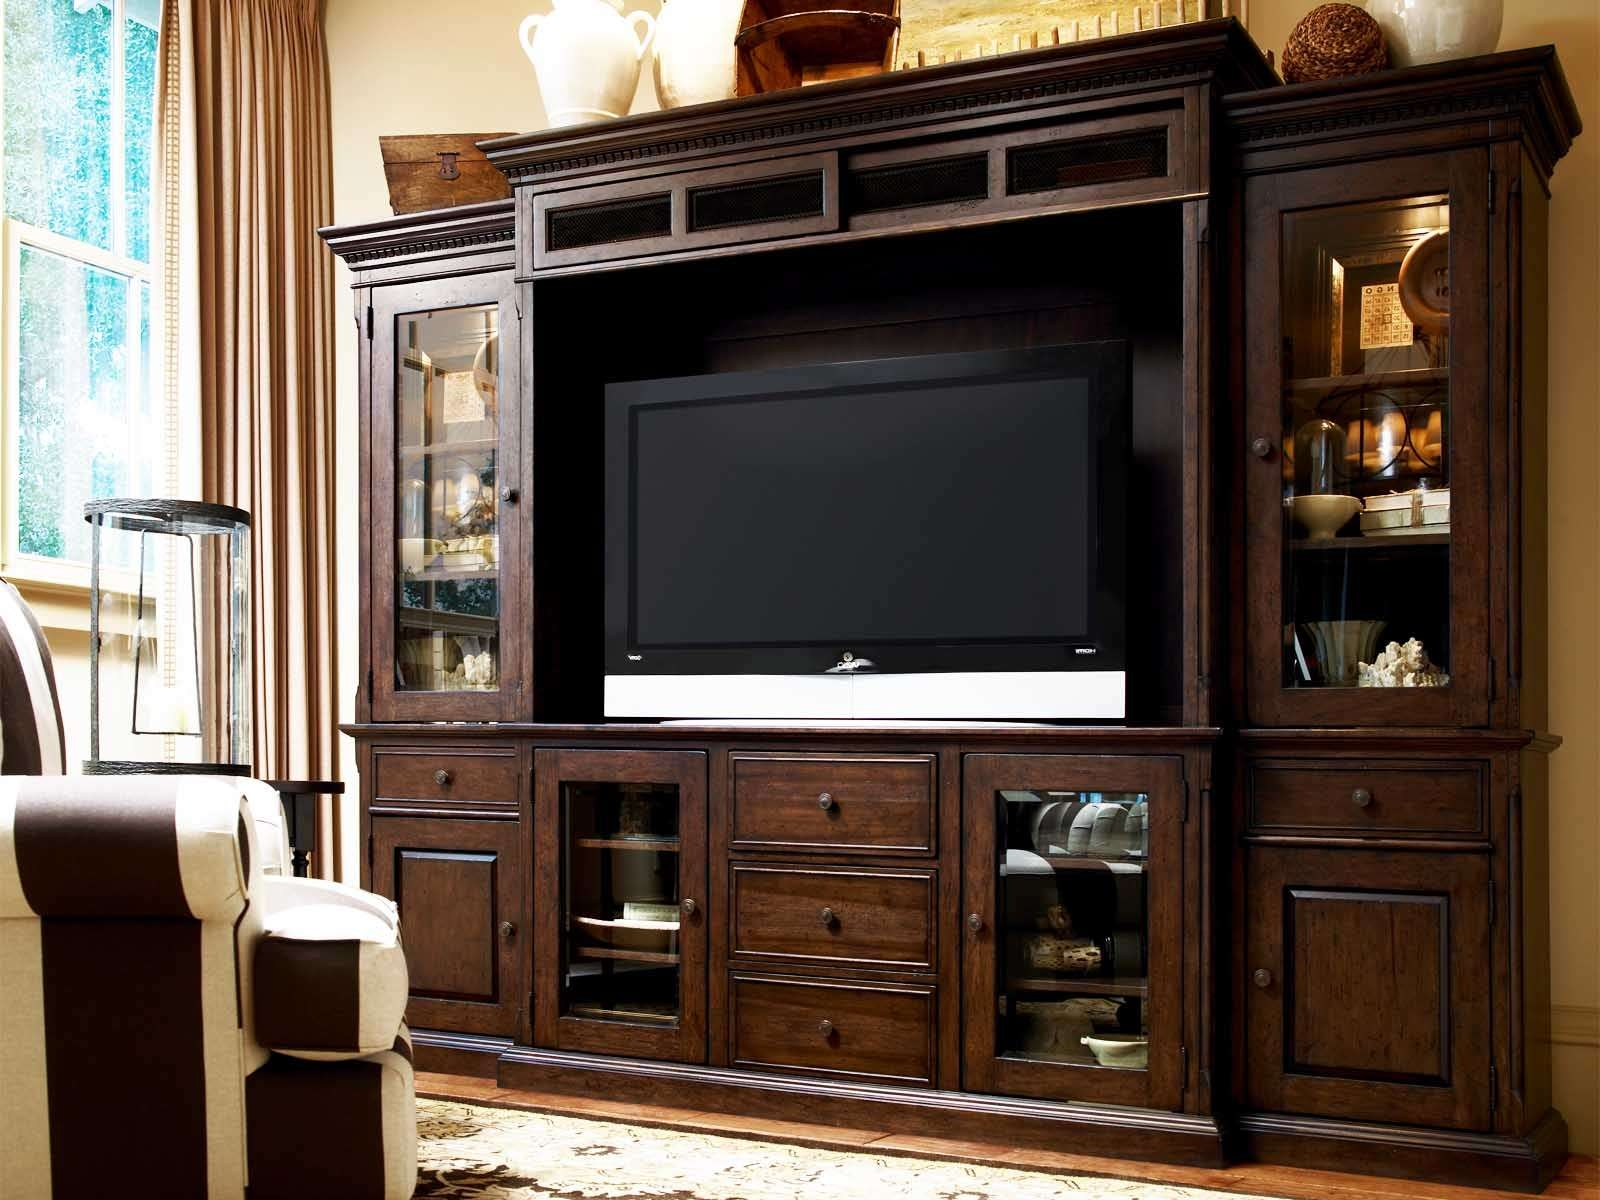 Tv Stand With Hutch Be Equipped Cabinet Drawer Made Of Wood For Throughout Tv Cabinets With Drawers (View 14 of 20)